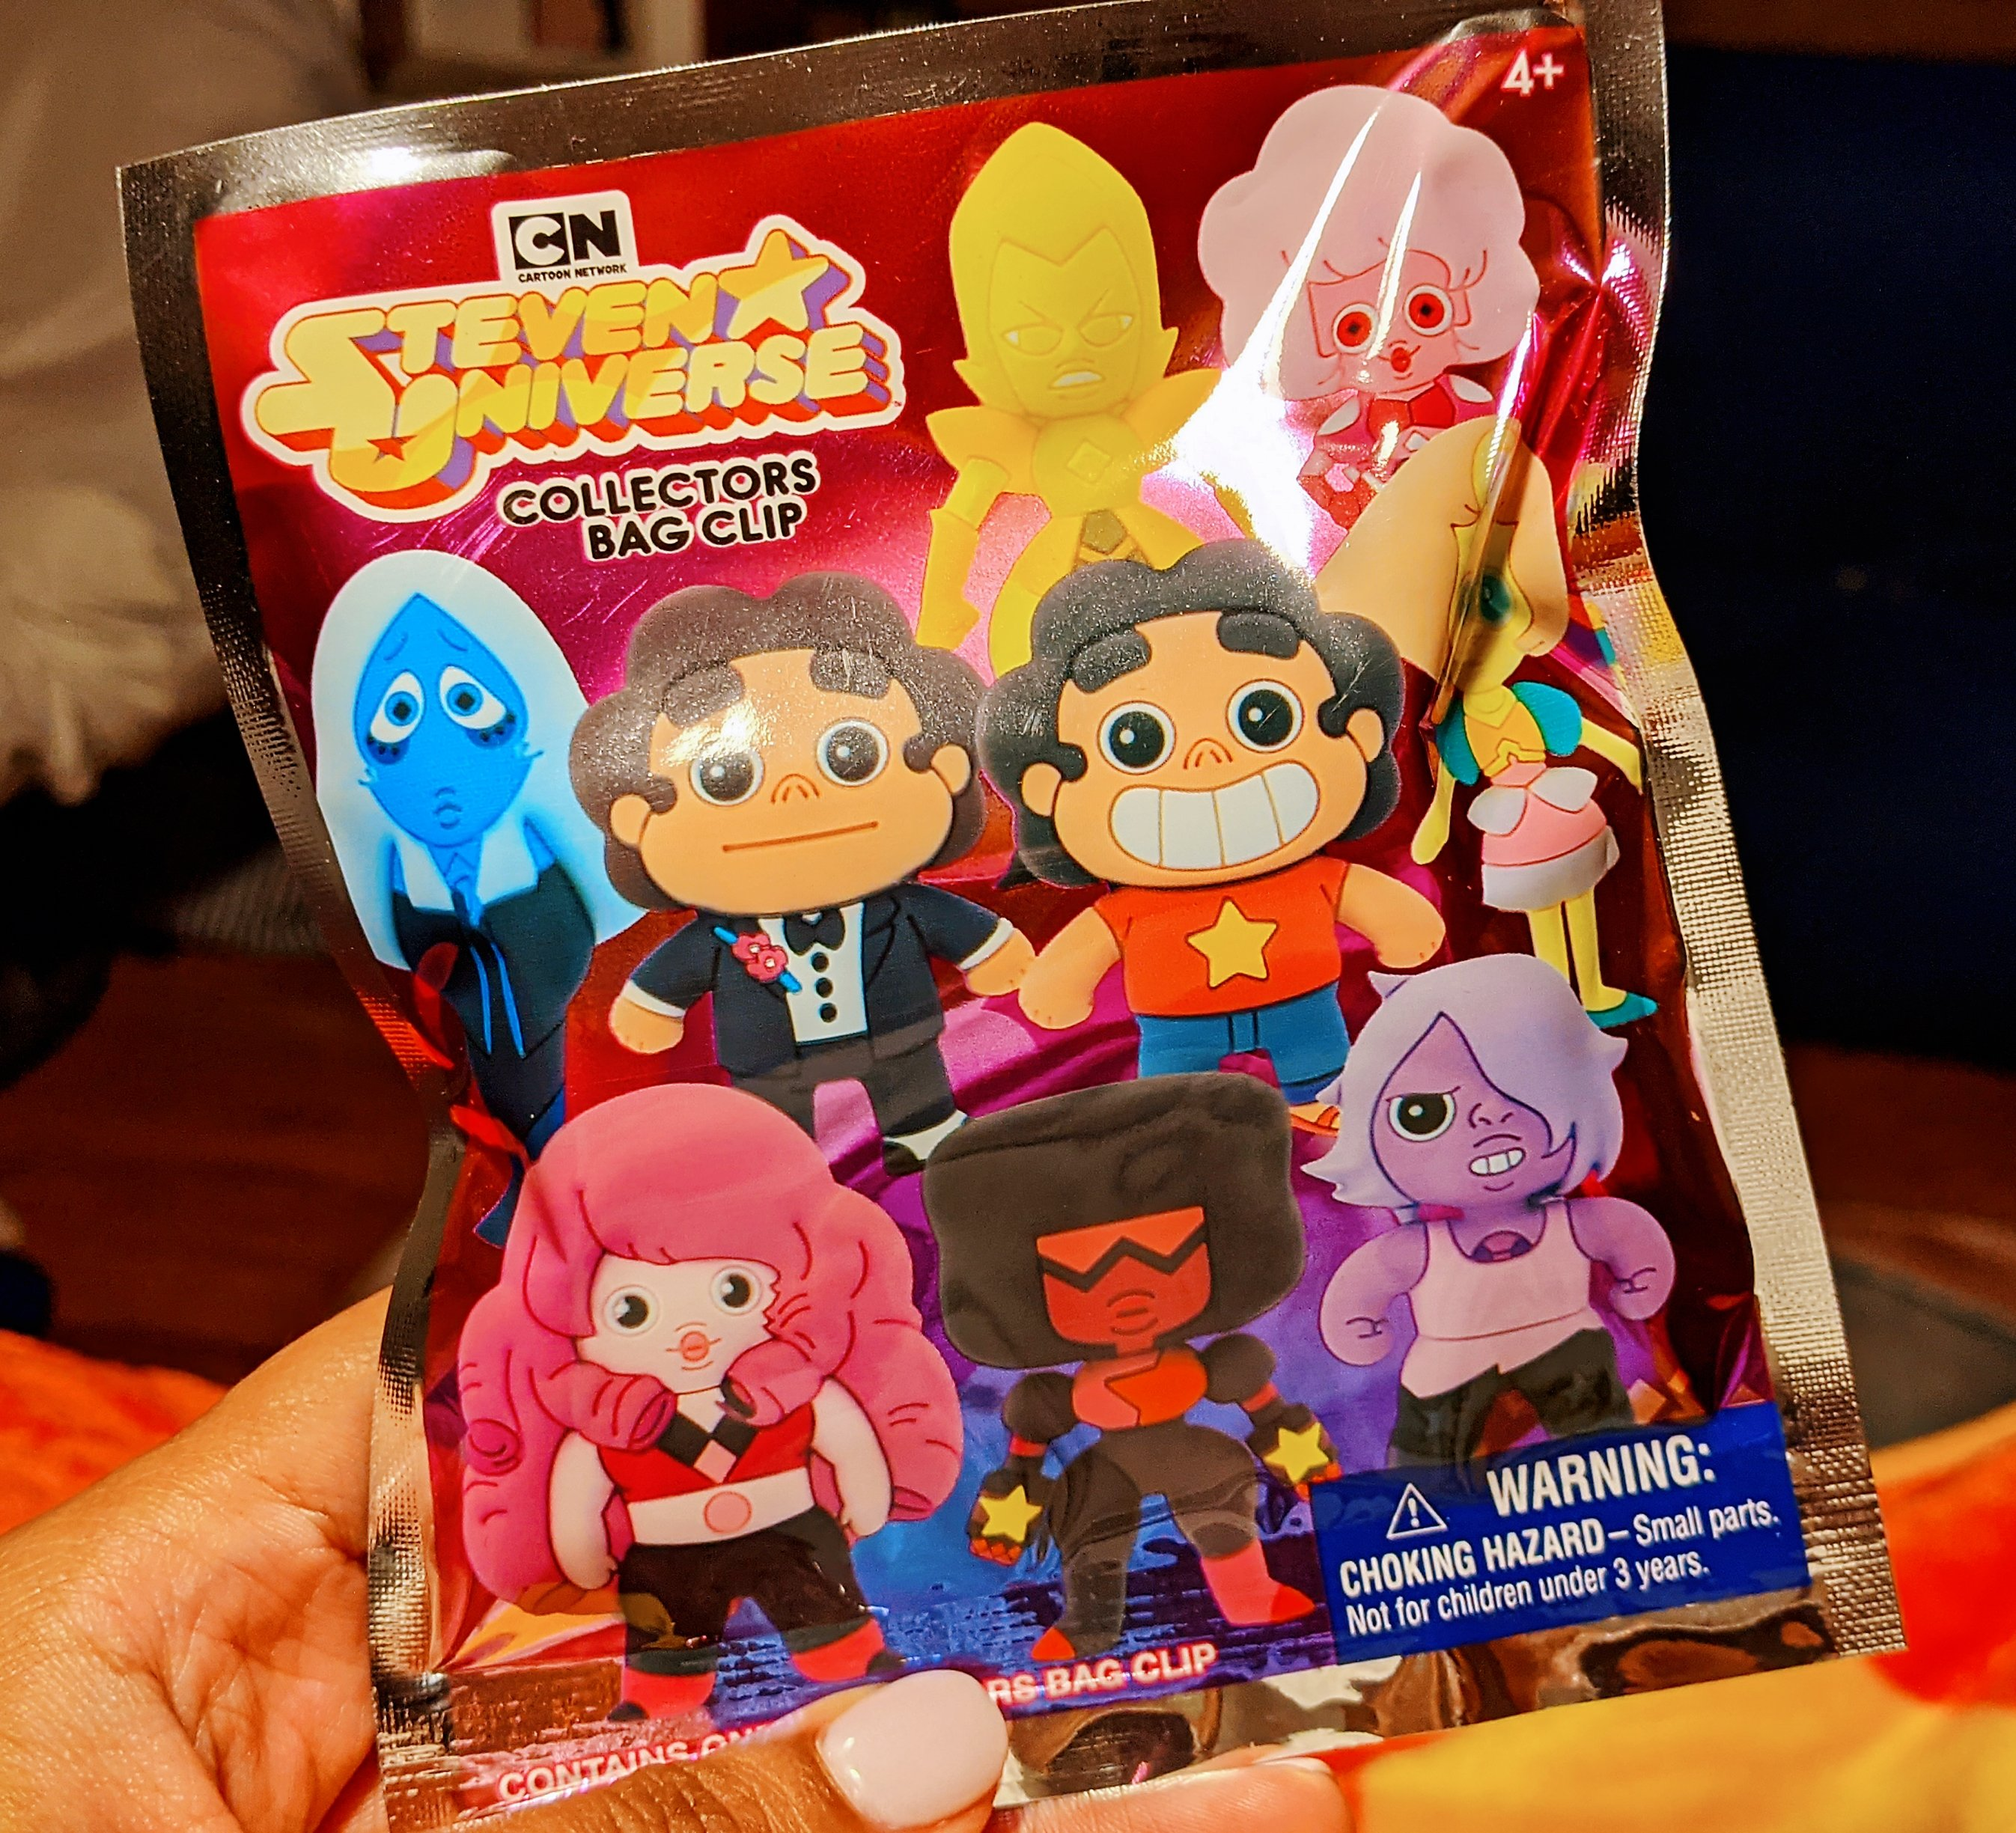 Miss Moody Lilac Steven universe mystery box. Collectors bag clip blind bag